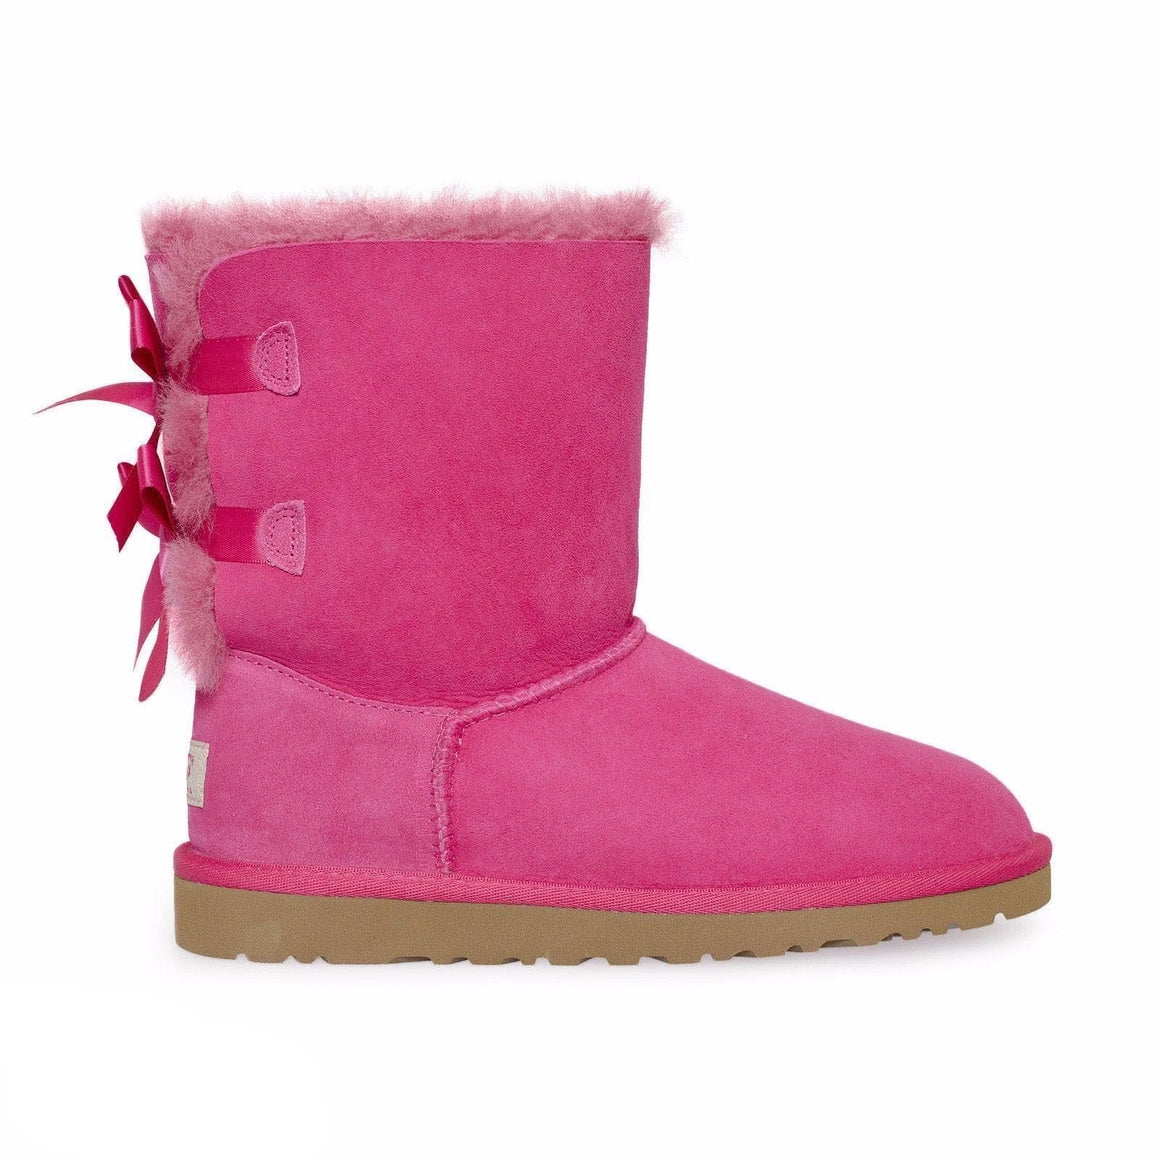 UGG Bailey Bow Cerise Pink Boots